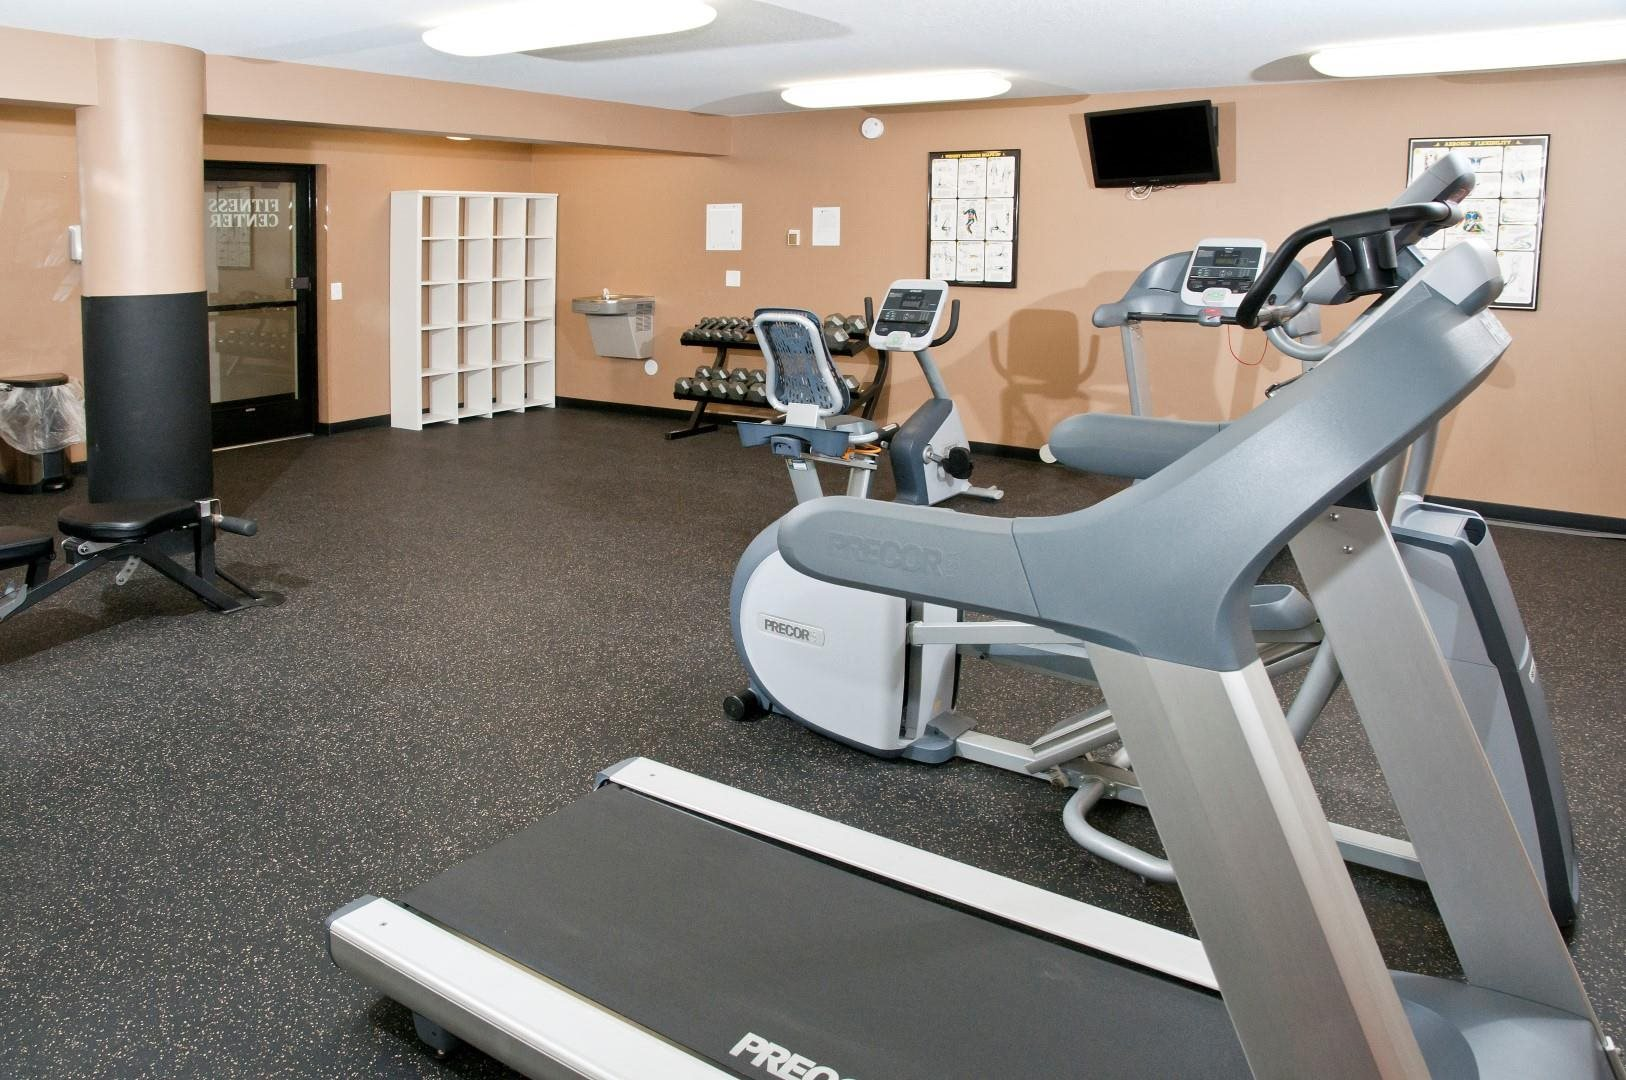 Fitness Room of St. Louis Park Apartment With Cardio Equipment and Free Weights